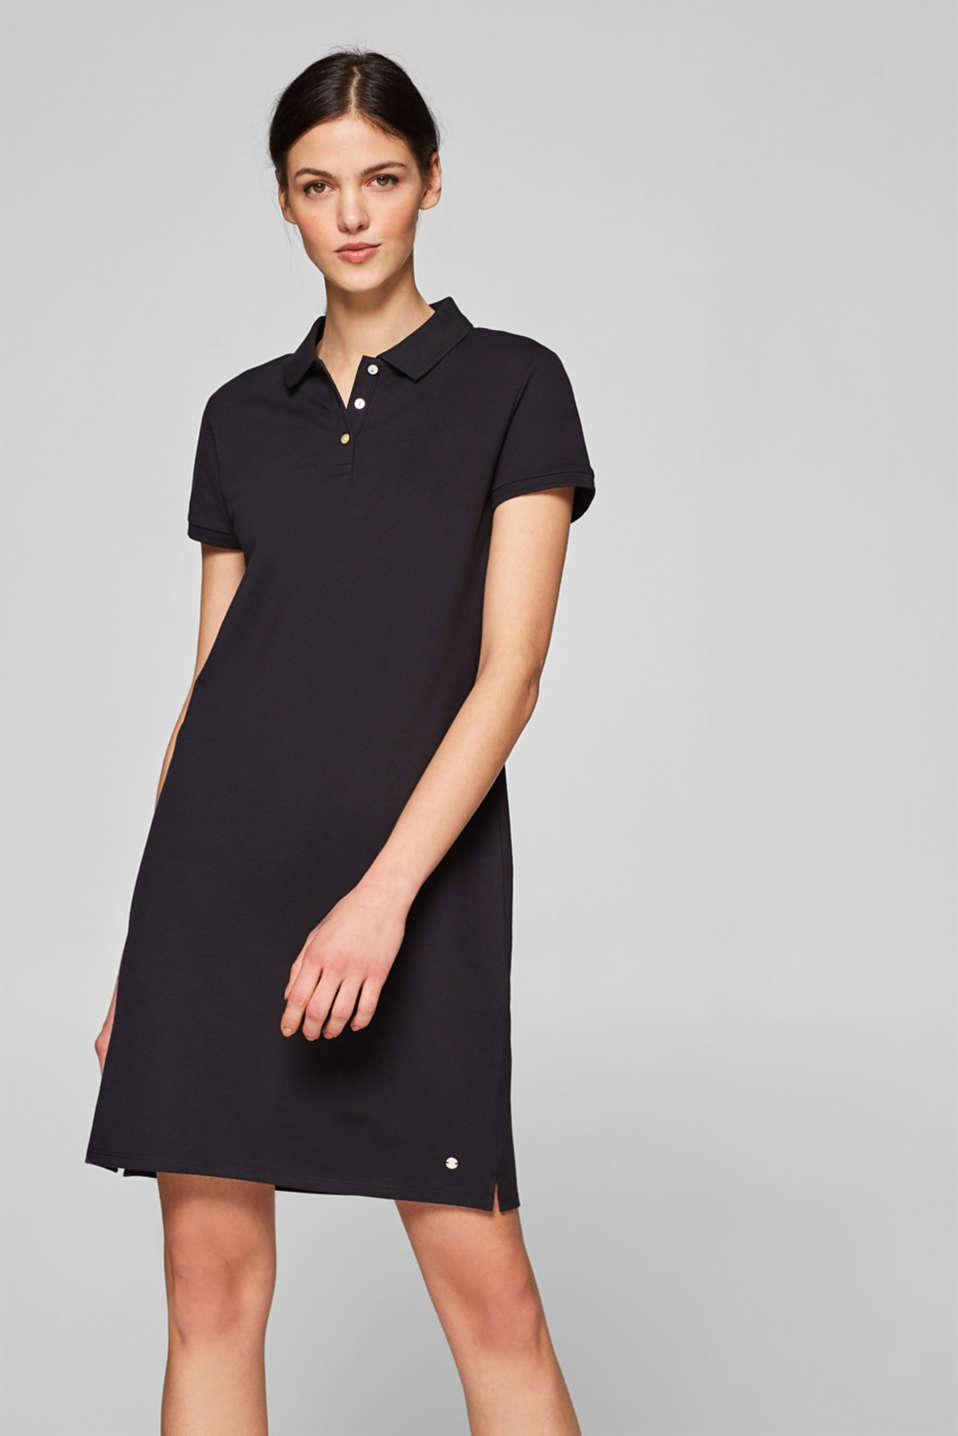 Esprit - Polo dress made of stretch piqué